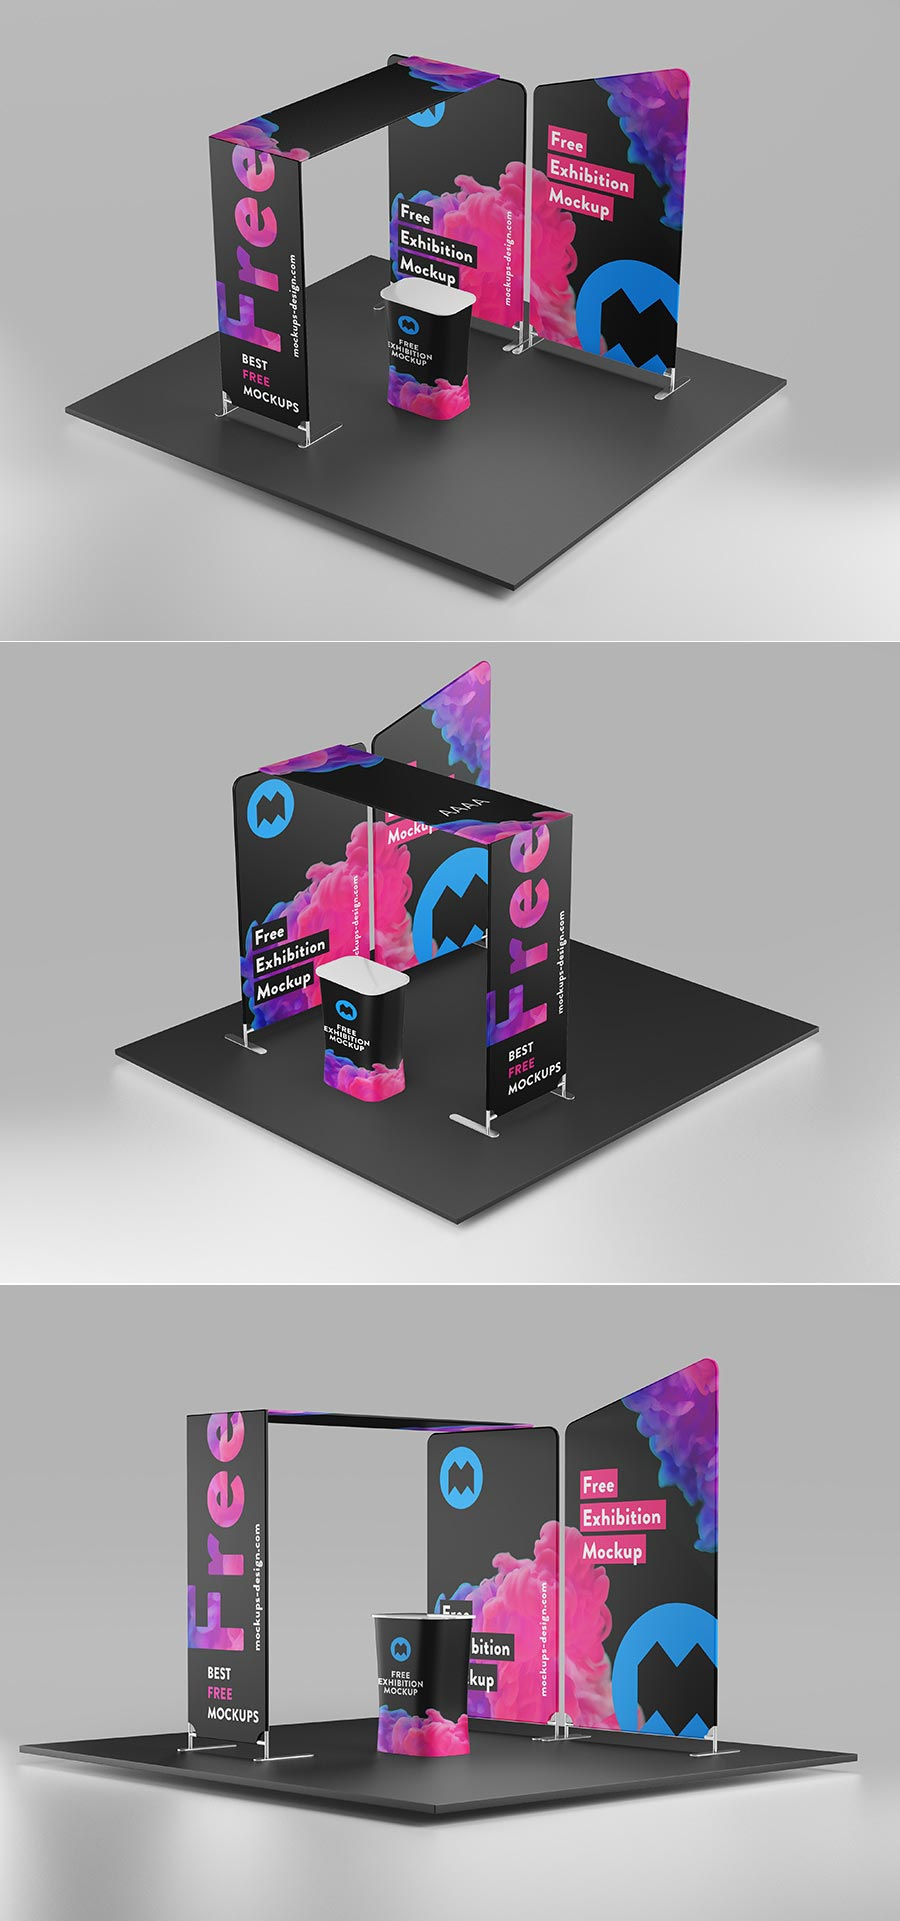 Free Exhibition Stage Mockup